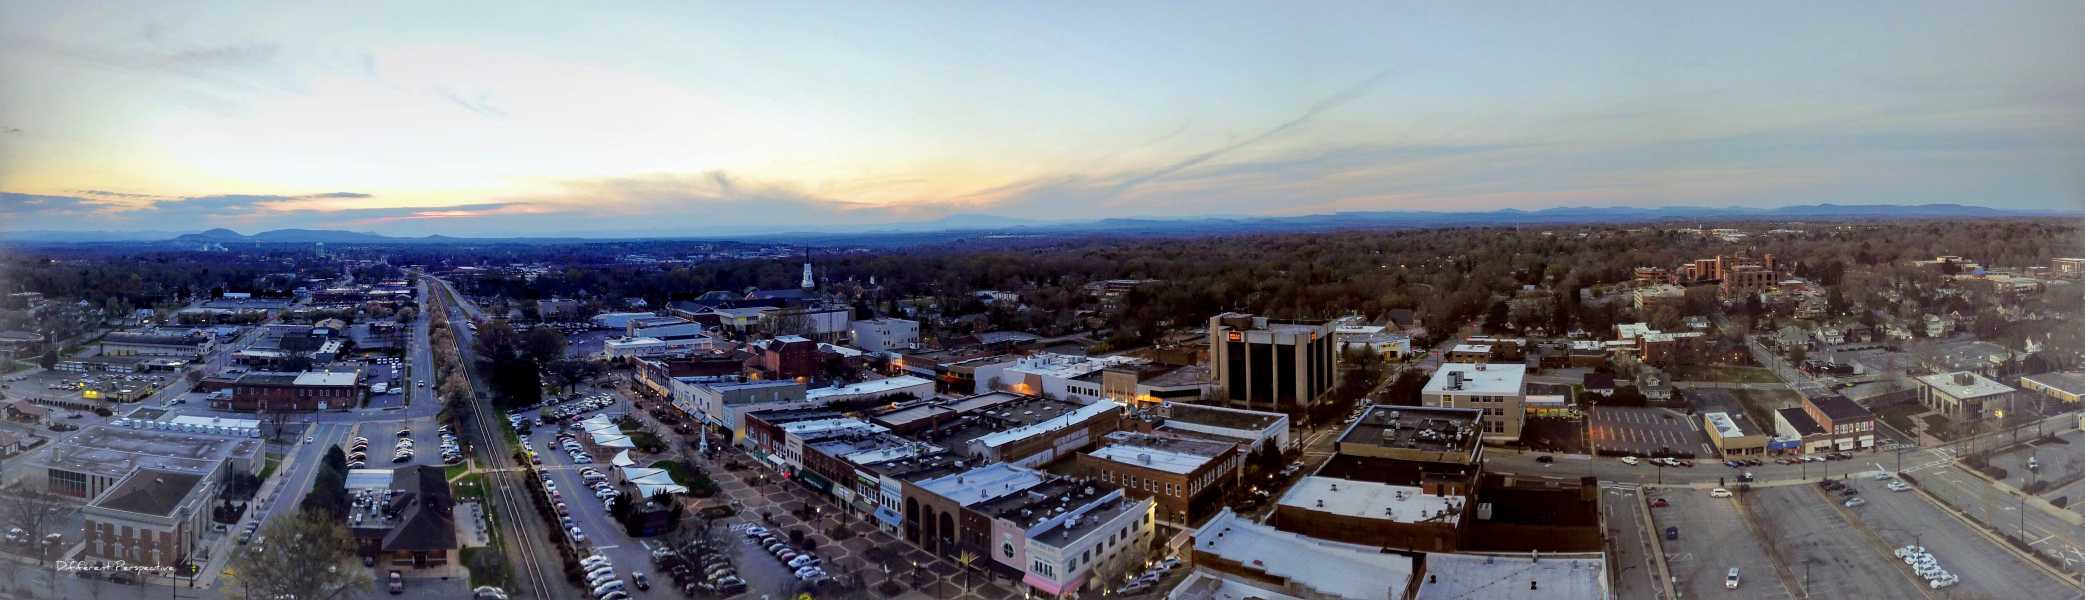 Drone Photo Hickory NC